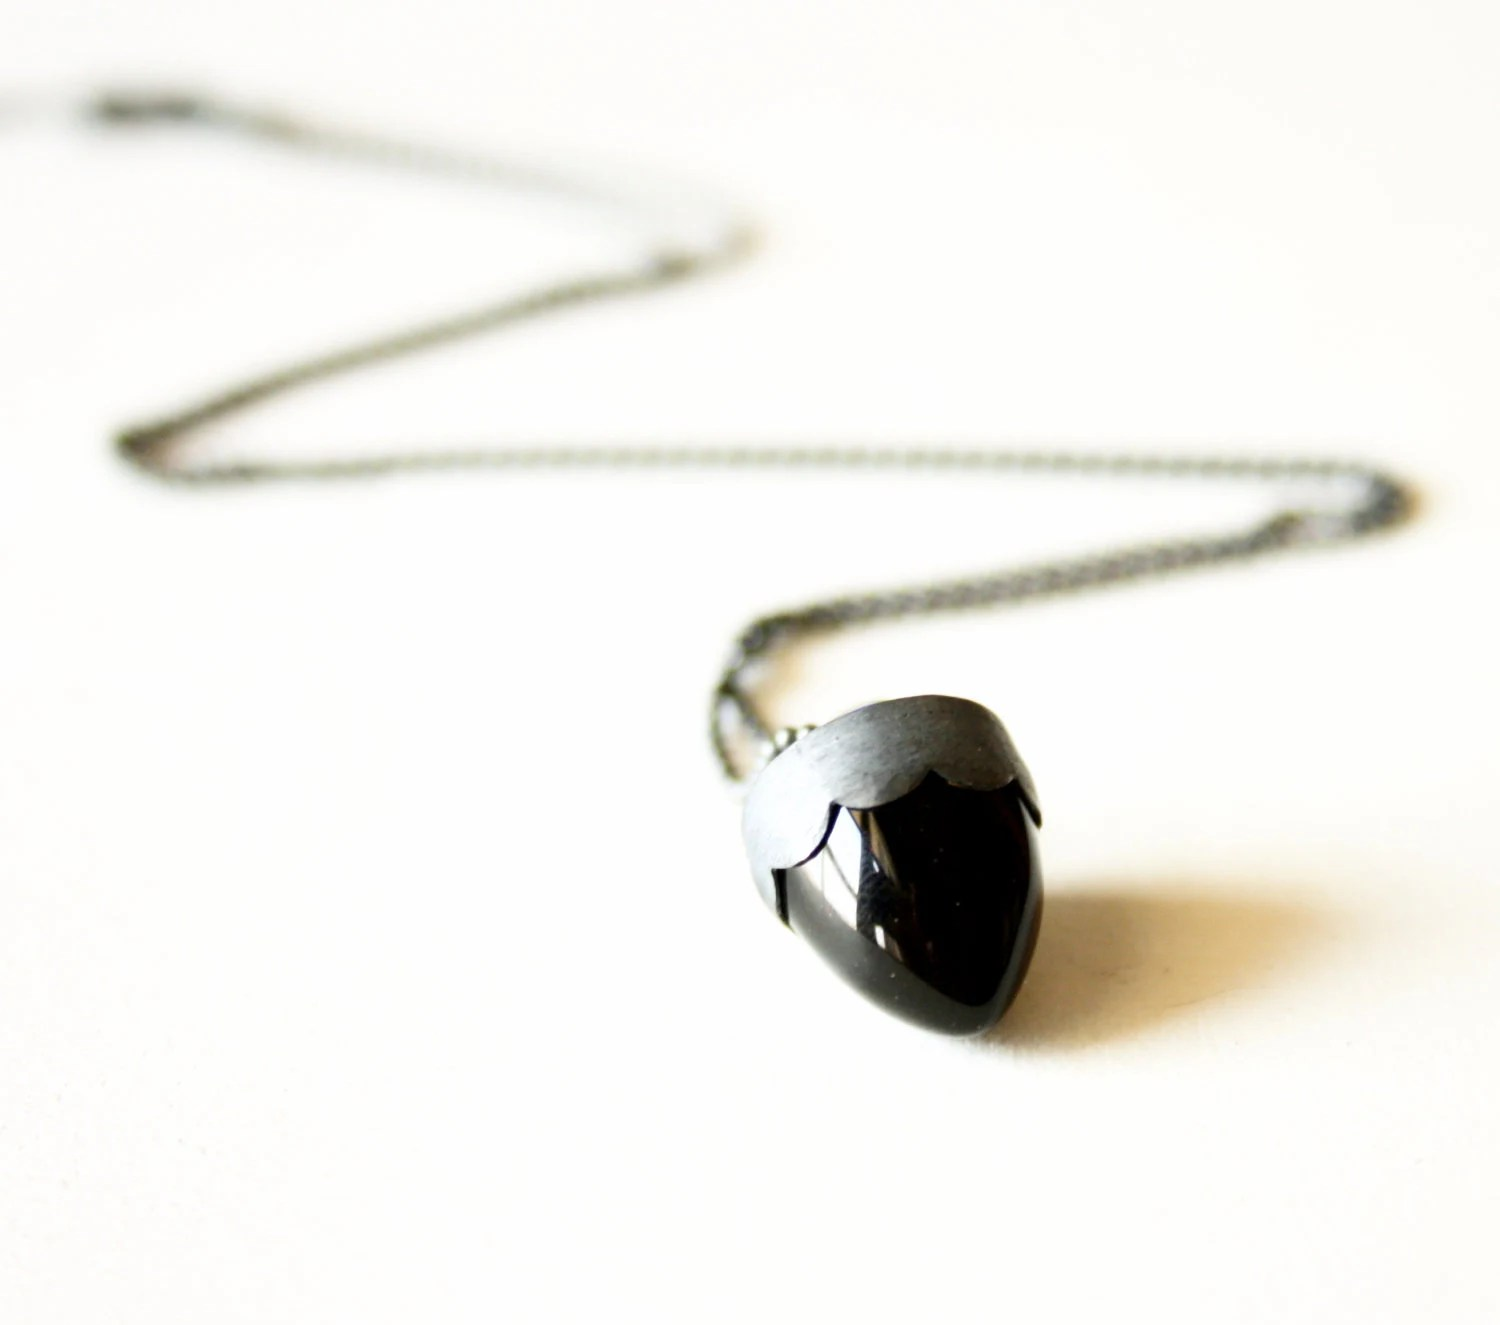 Black bullet Obsidian pendant necklace Sterling silver handmade gifts under 50 FREE SHIPPING - SilverLinesJewelry